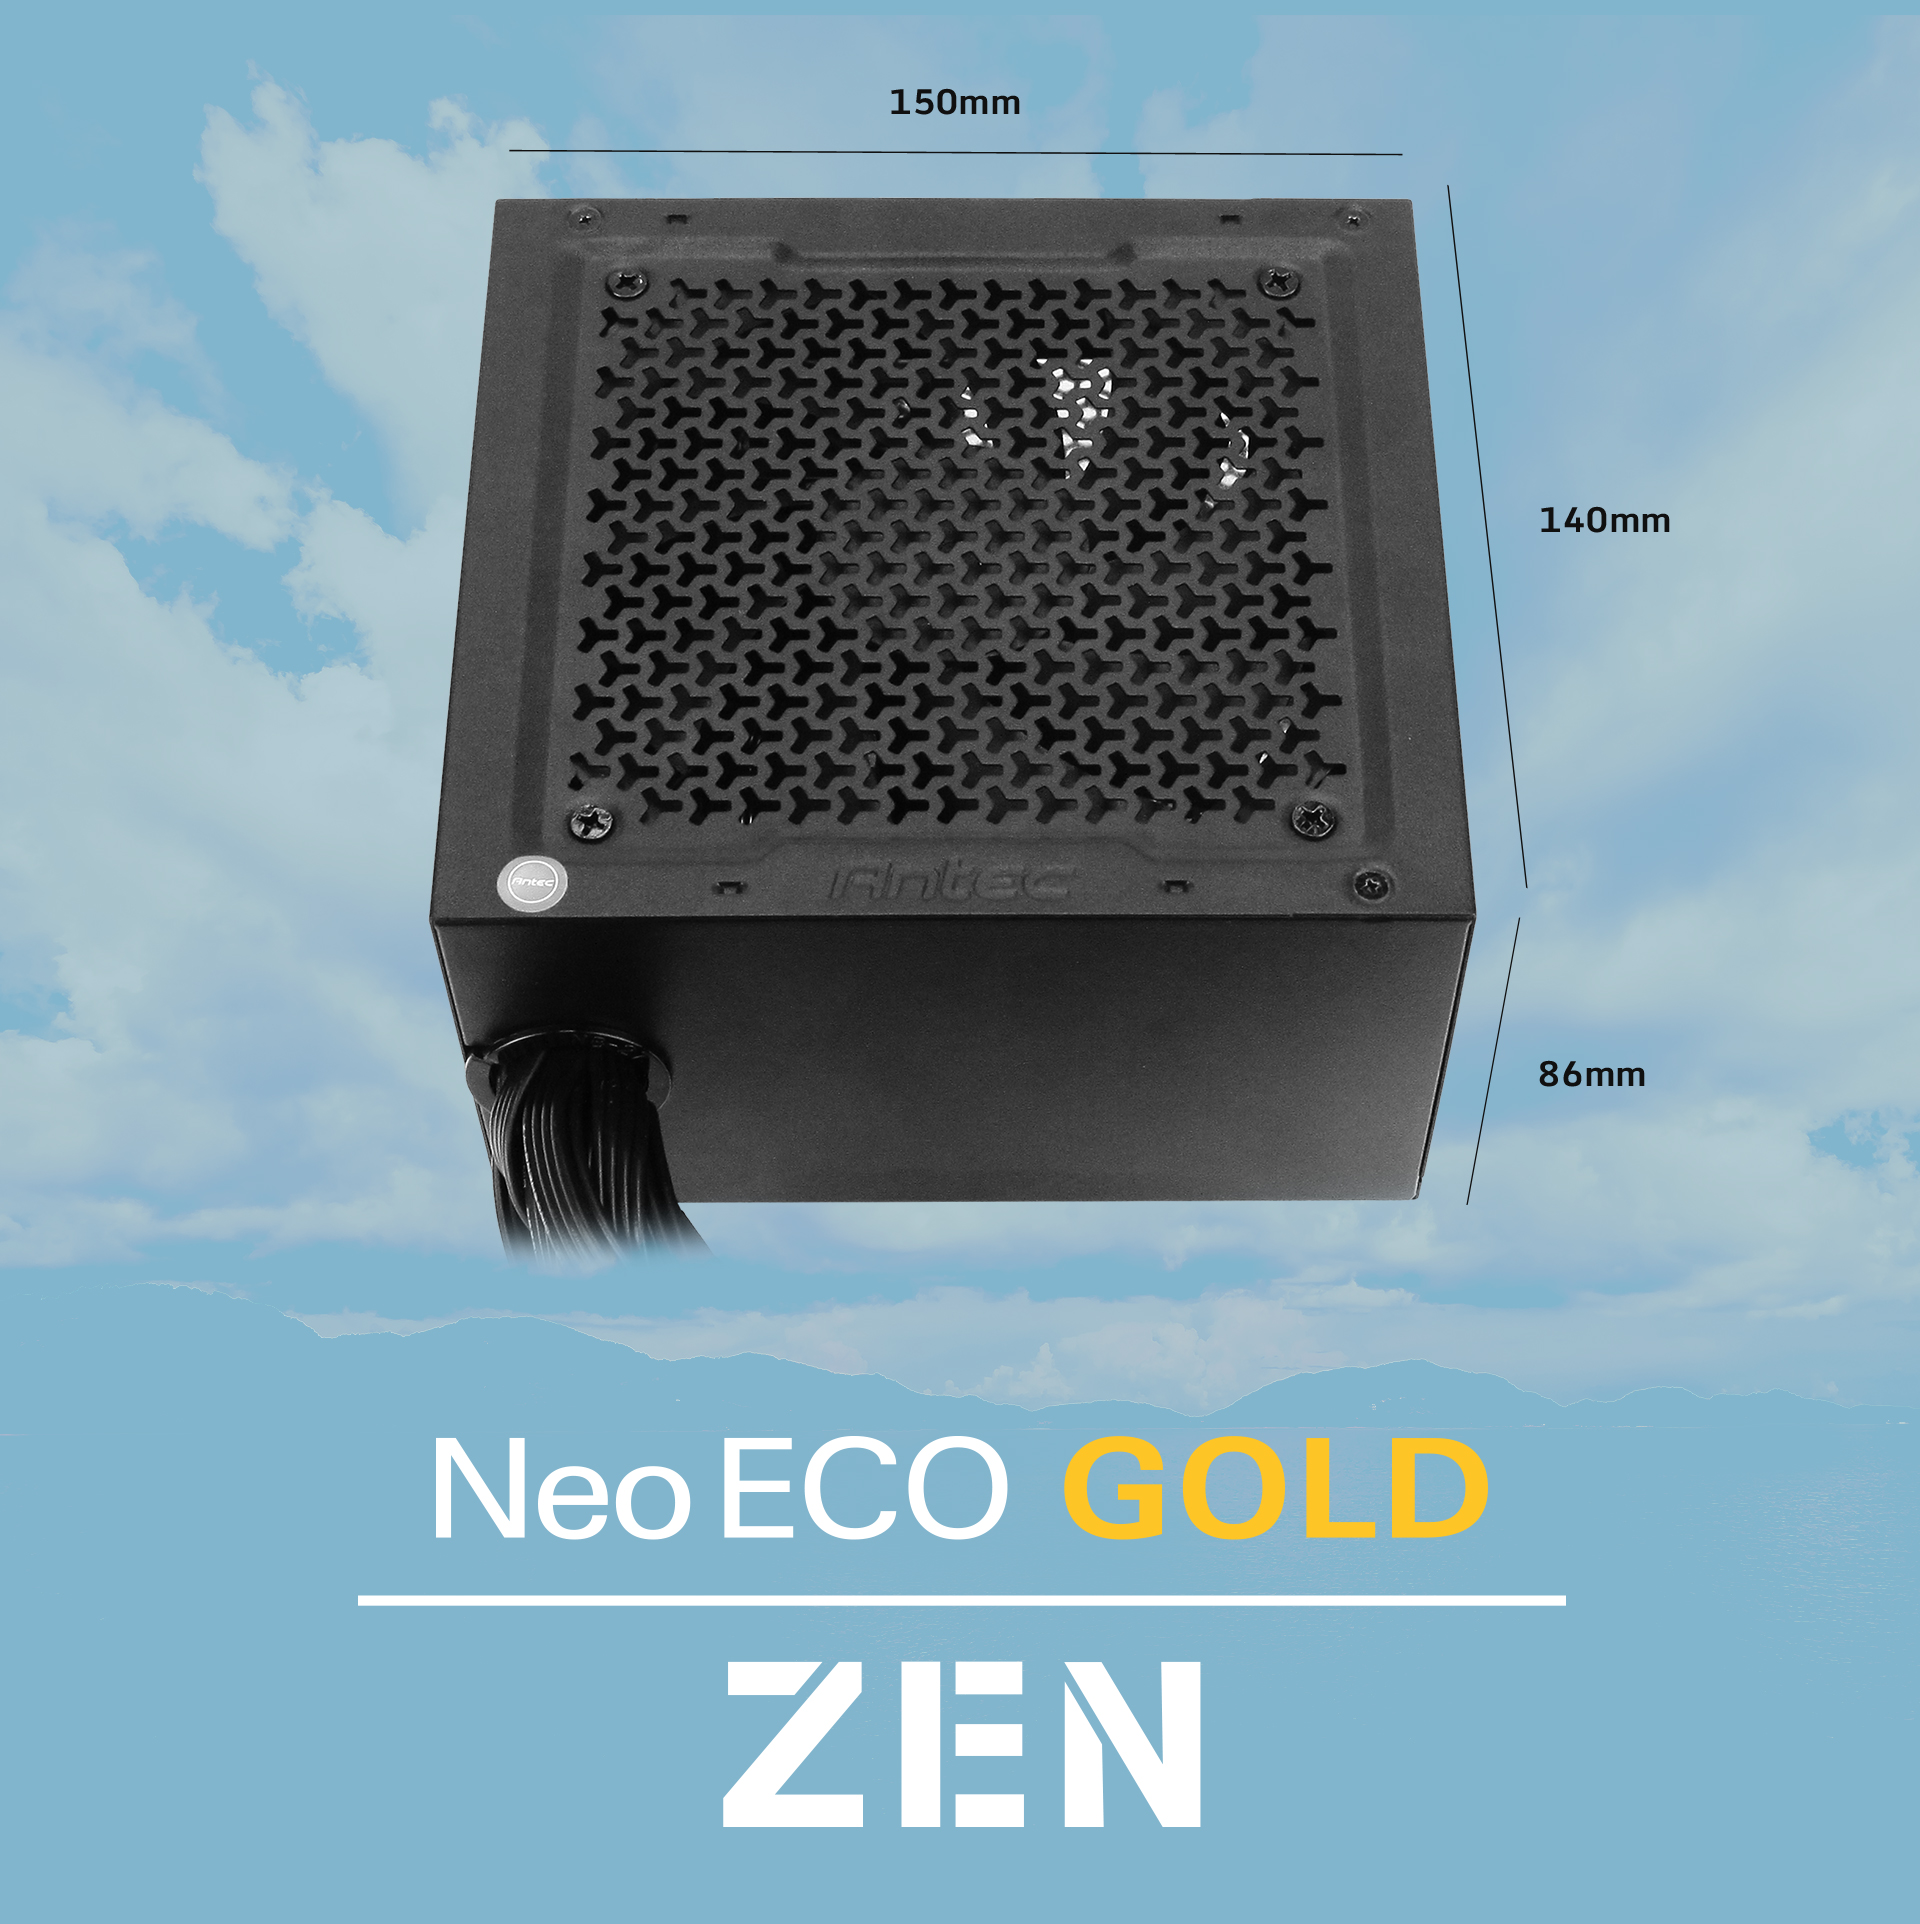 Antec NeoECO Gold ZEN Series NE600G ZEN Power Supply length, width and height